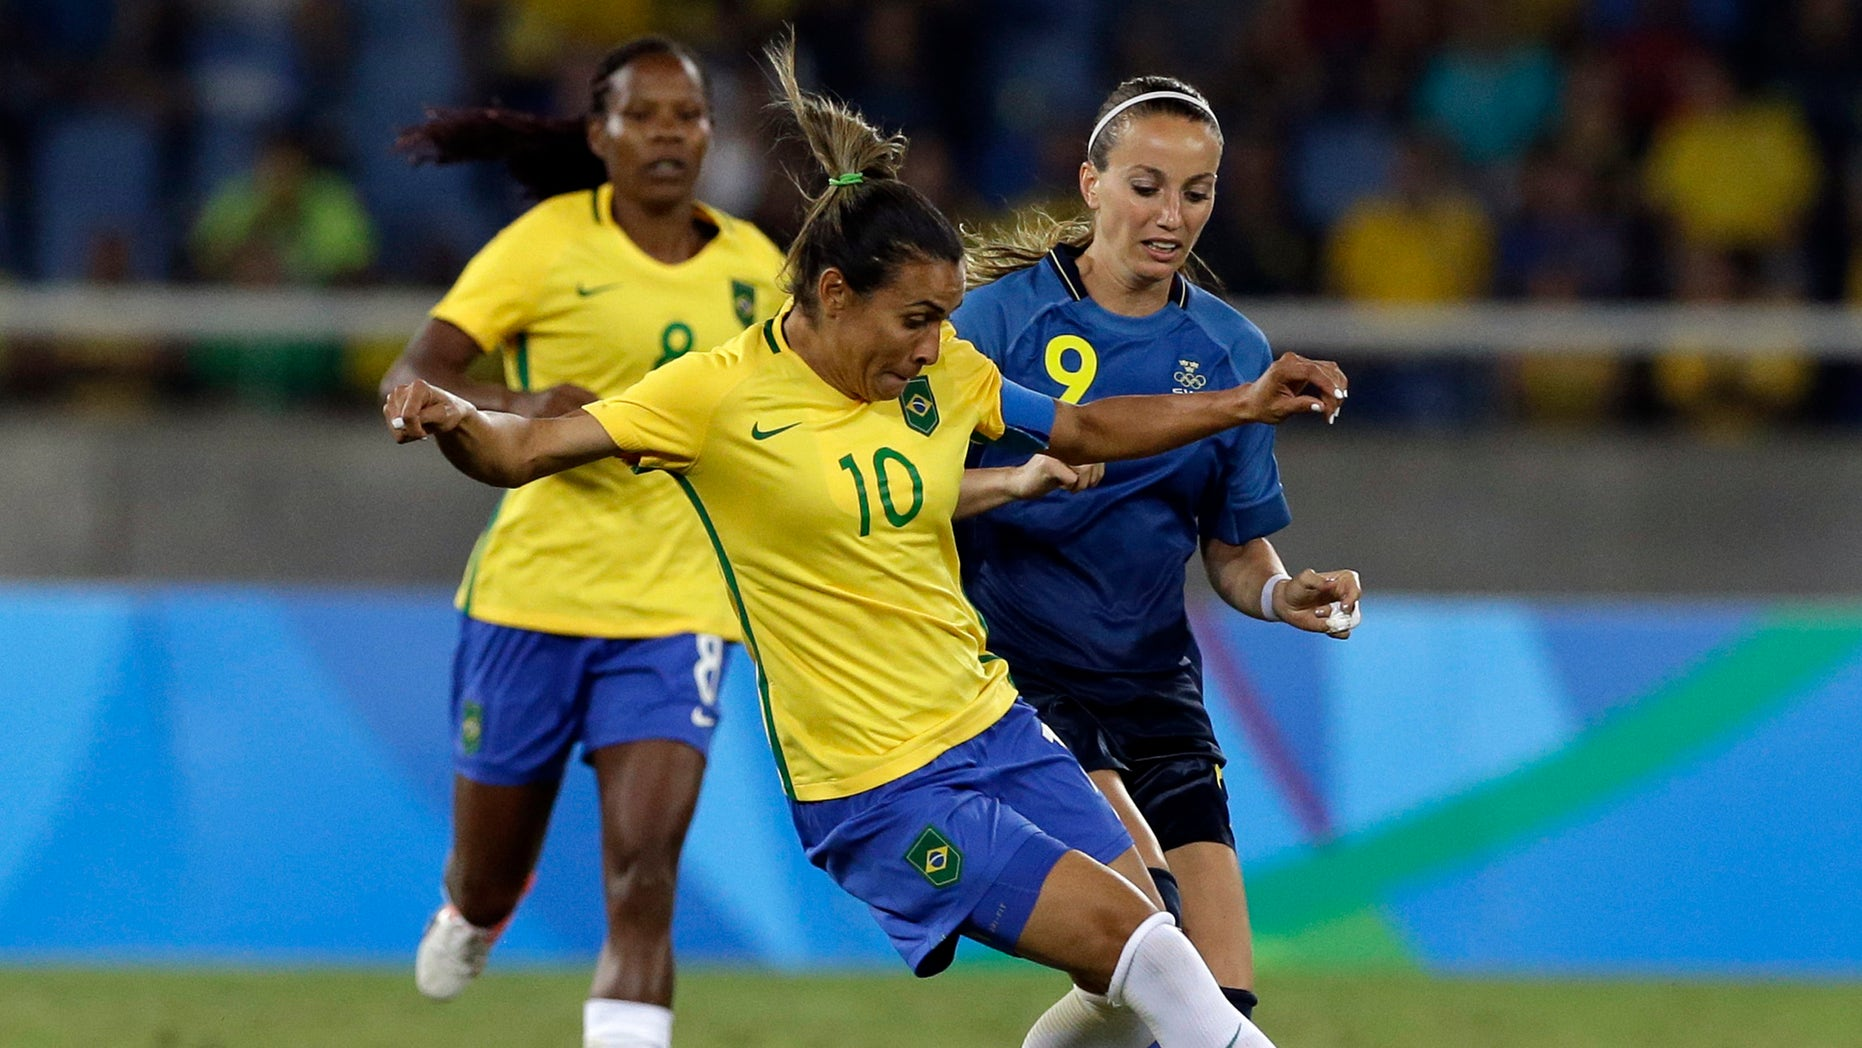 Brazil's Marta, center, dribbles past Sweden's Kosovare Asllani during a group E match of the women's Olympic football tournament between Sweden and Brazil at the Rio Olympic Stadium in Rio De Janeiro, Brazil, Saturday, Aug. 6, 2016. (AP Photo/Leo Correa)